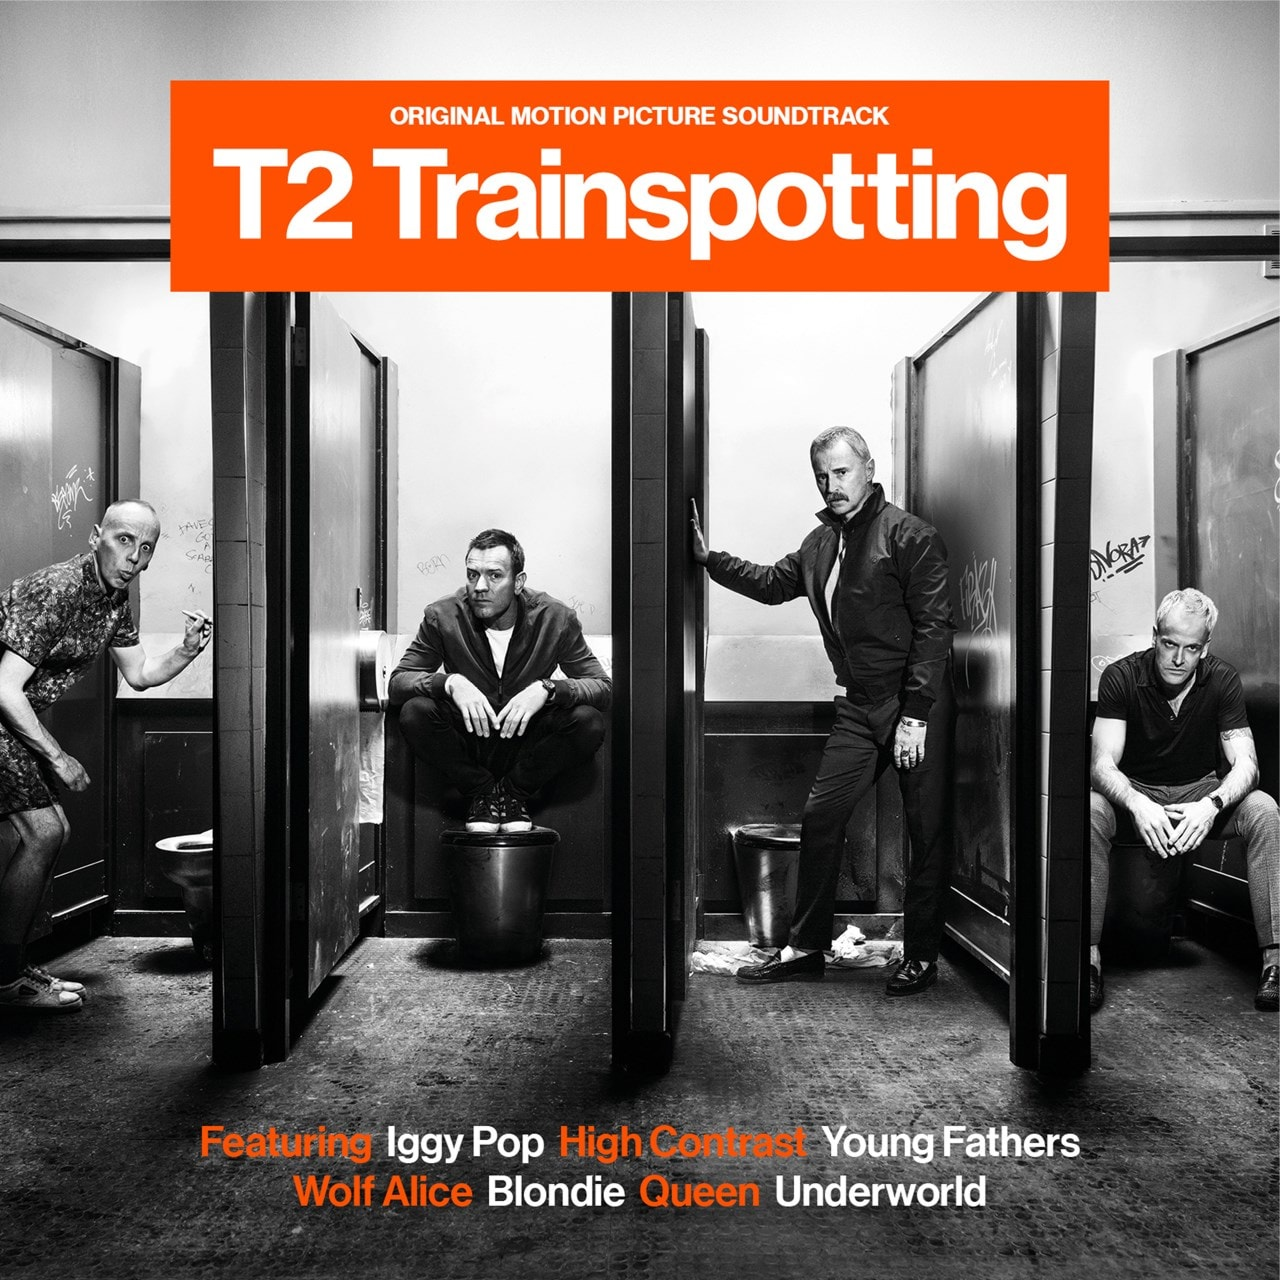 T2 Trainspotting: Original Motion Picture Soundtrack - 1